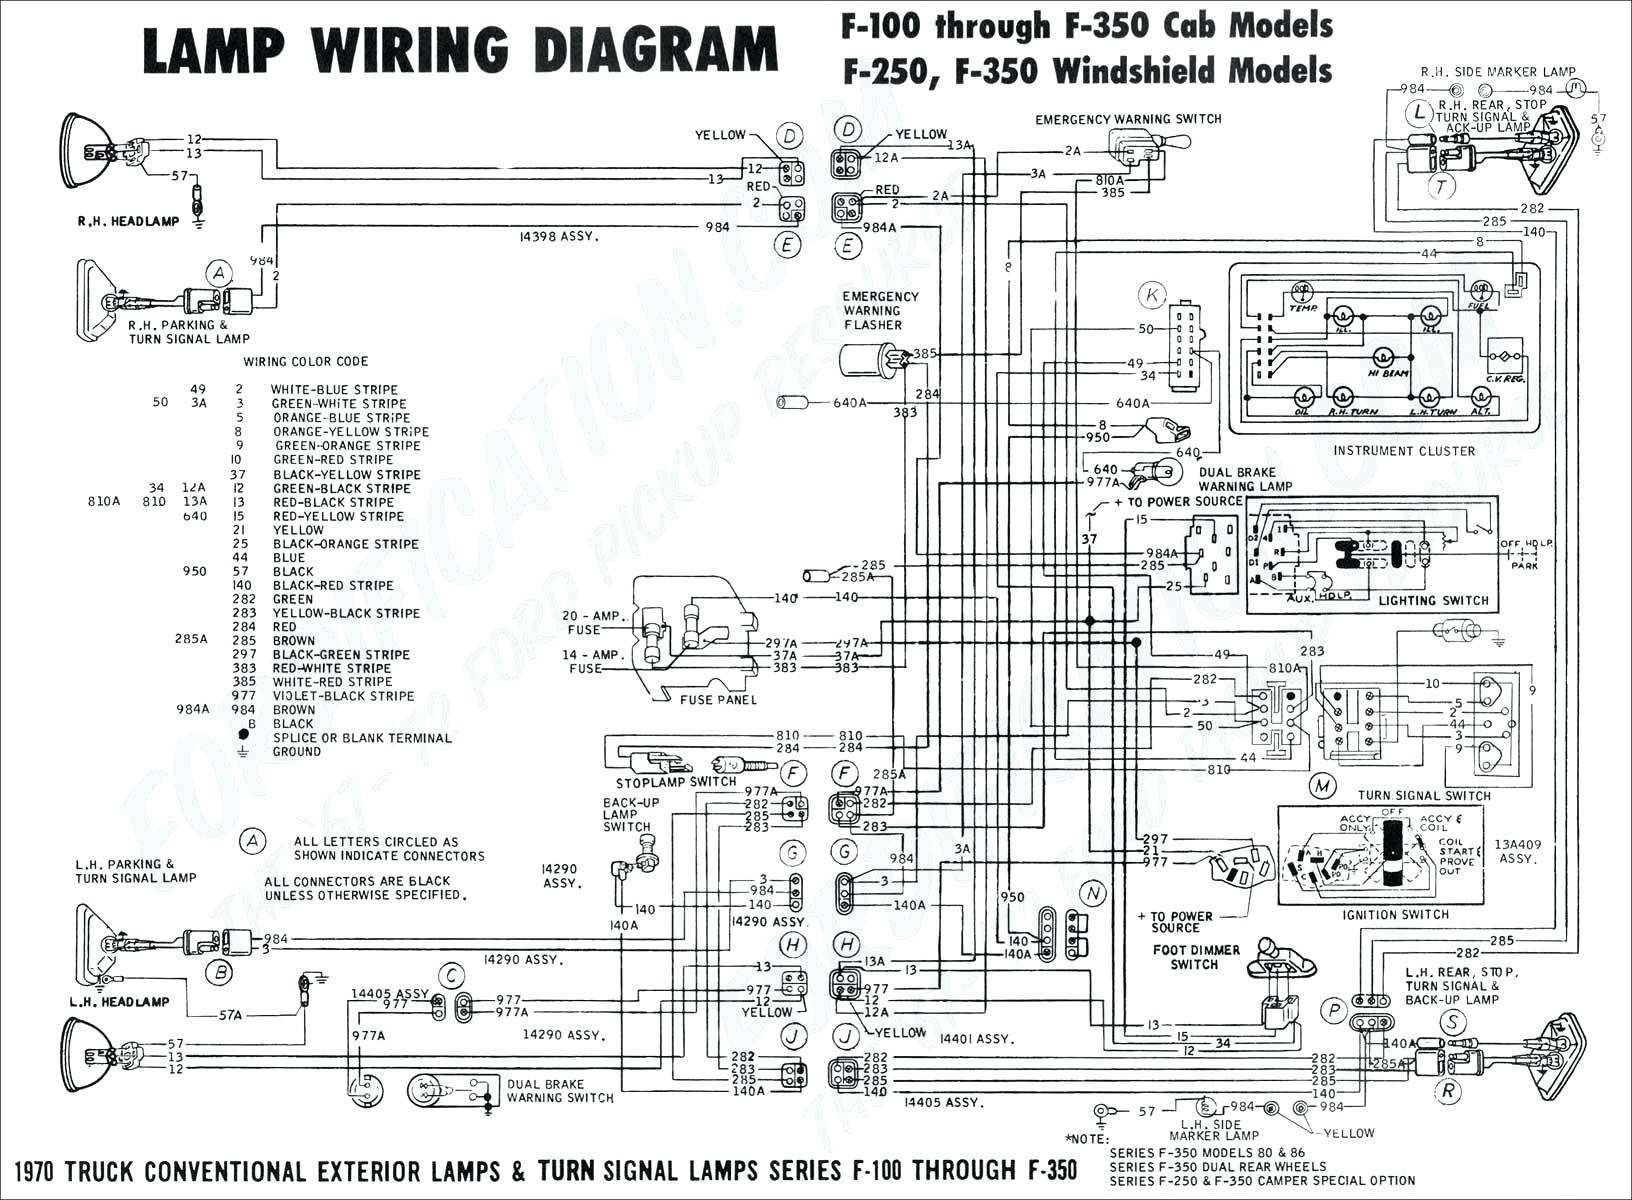 heartland rv wiring diagram Collection-Heartland Rv Wiring Diagram Heartland Rv Wiring Diagram Awesome Wiring Diagram Rv Wiringrams Heartland Trailerram 7-p